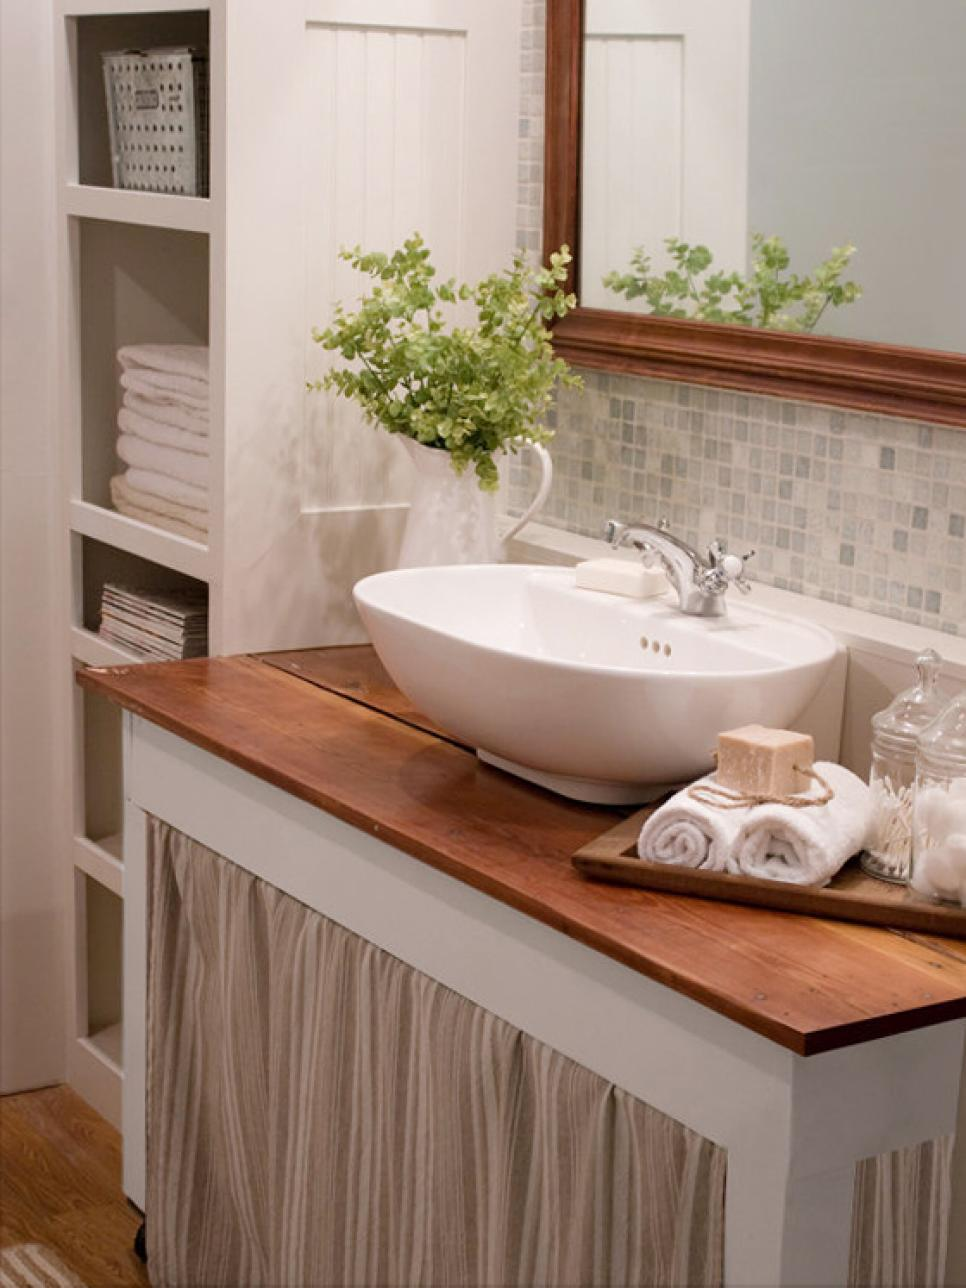 20 Small Bathroom Design Ideas | HGTV